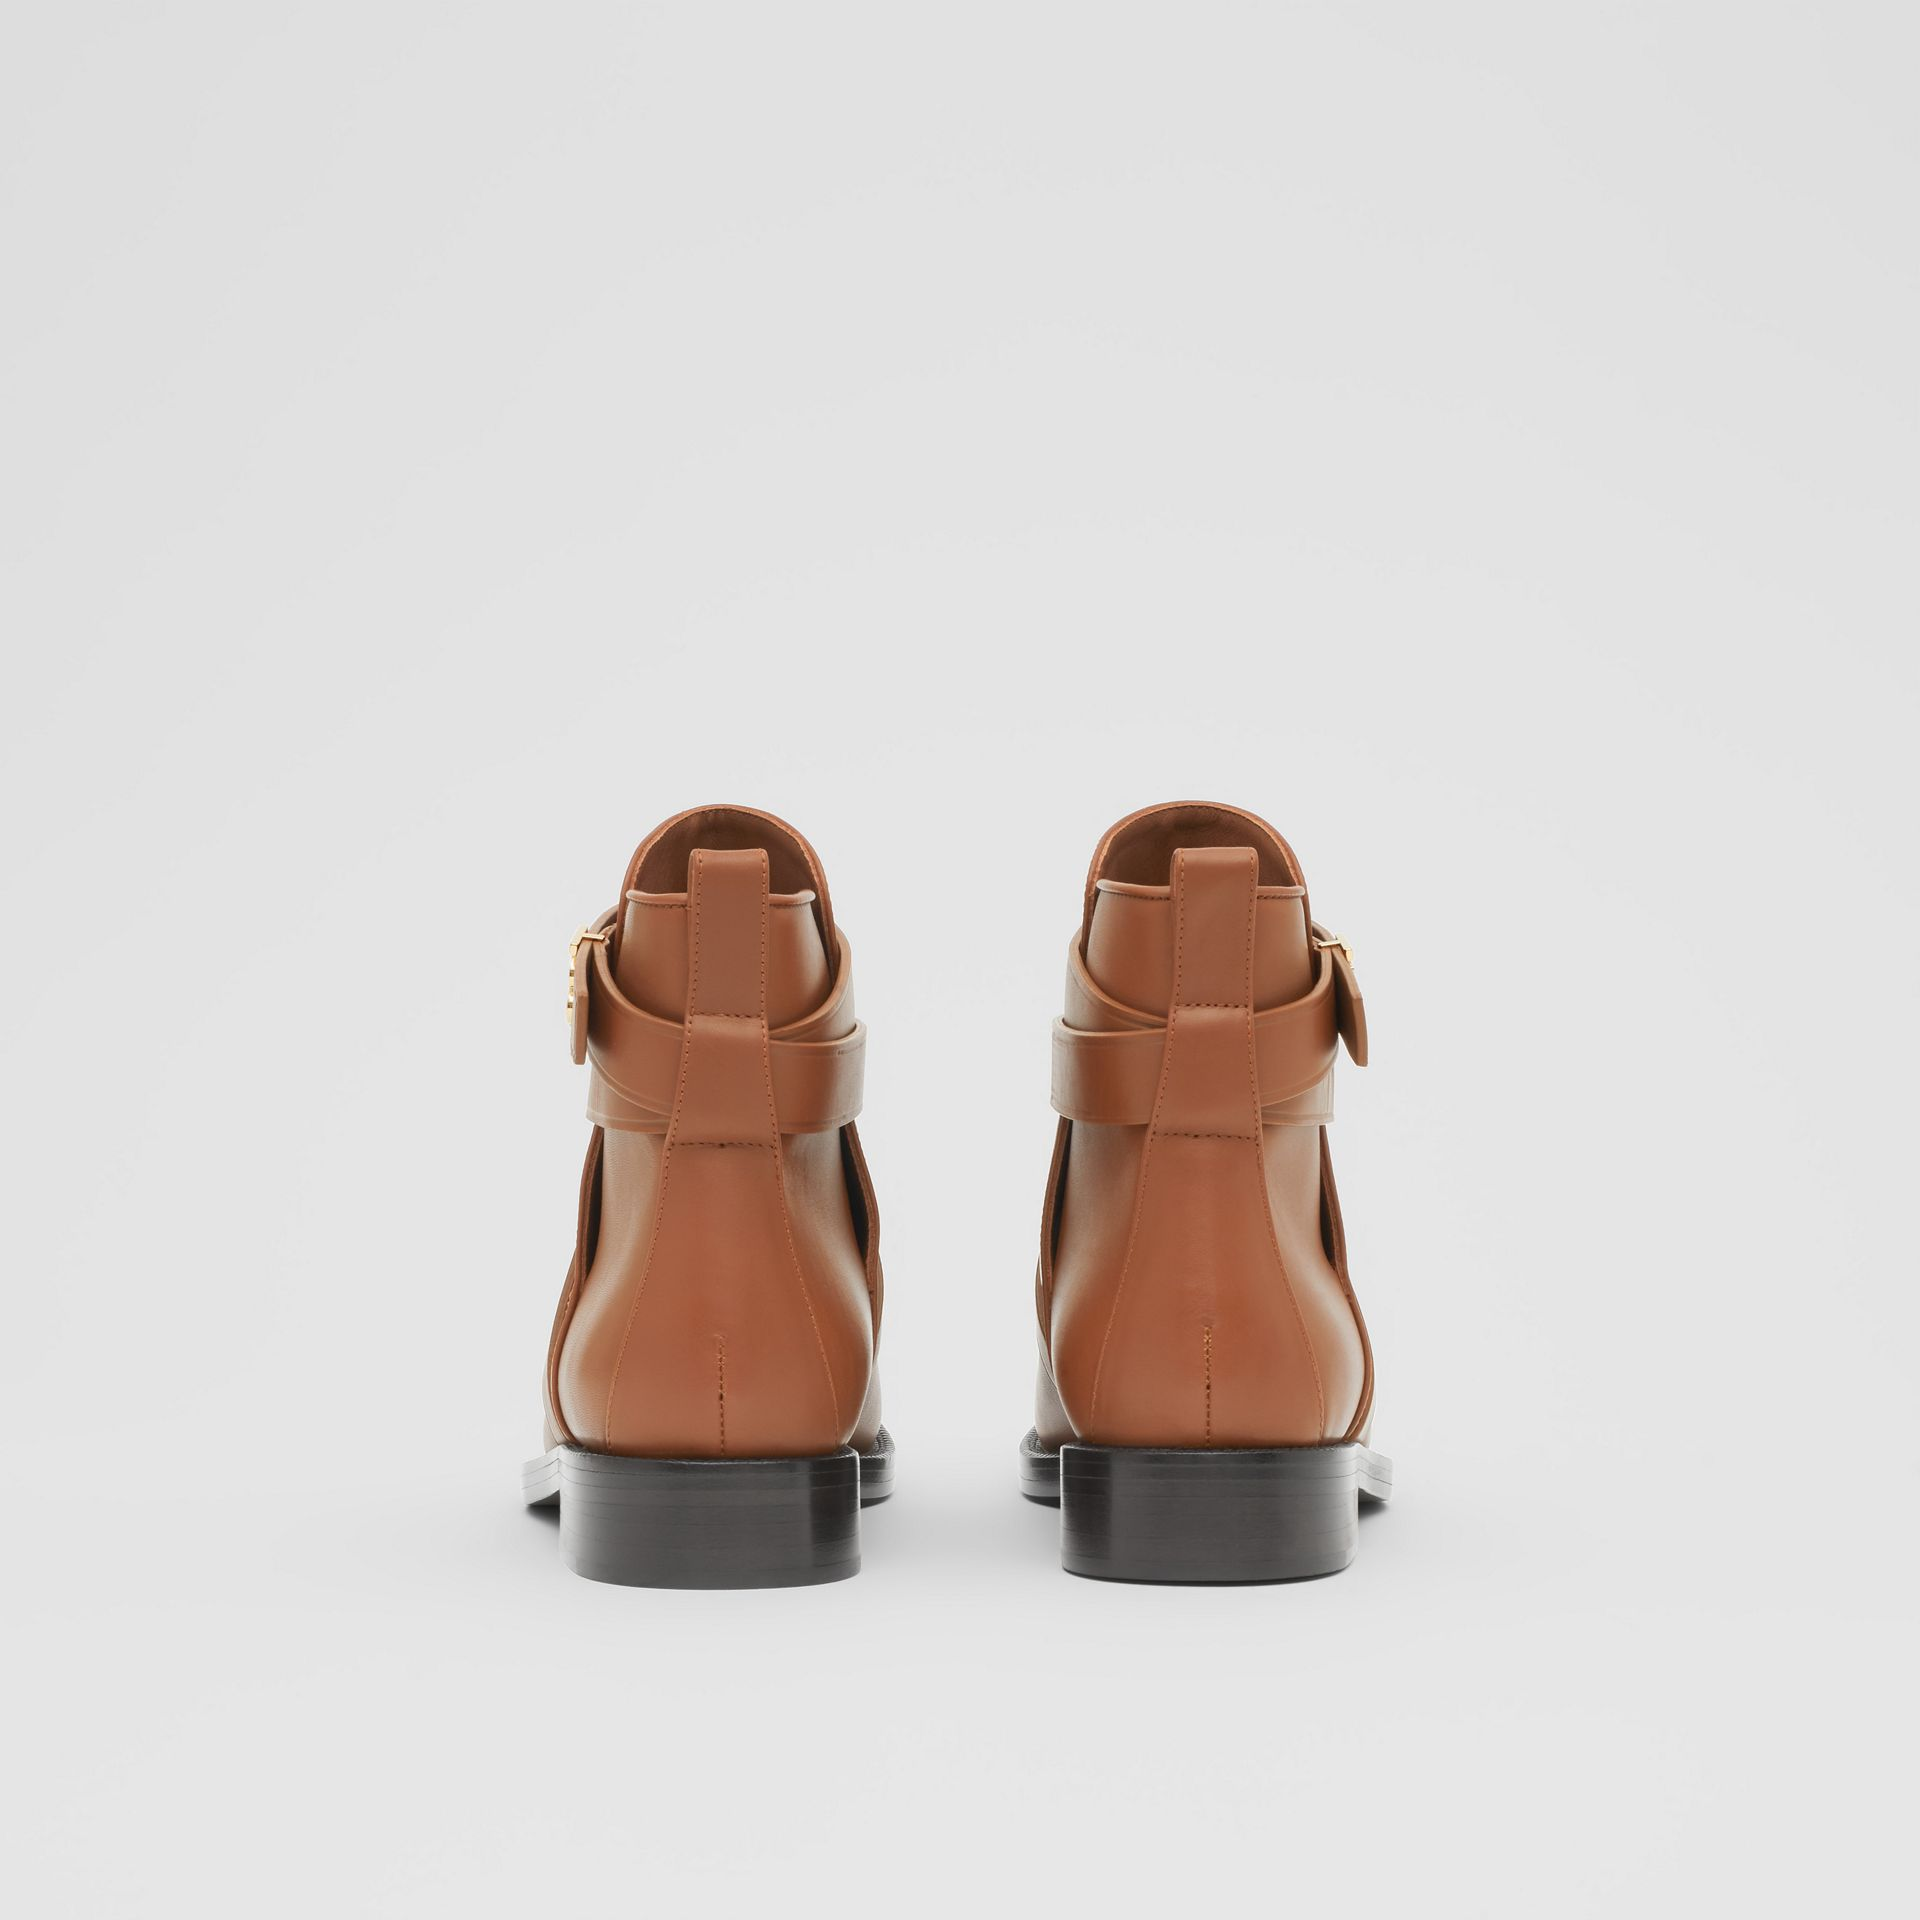 Monogram Motif Leather Ankle Boots in Tan - Women | Burberry Canada - gallery image 3